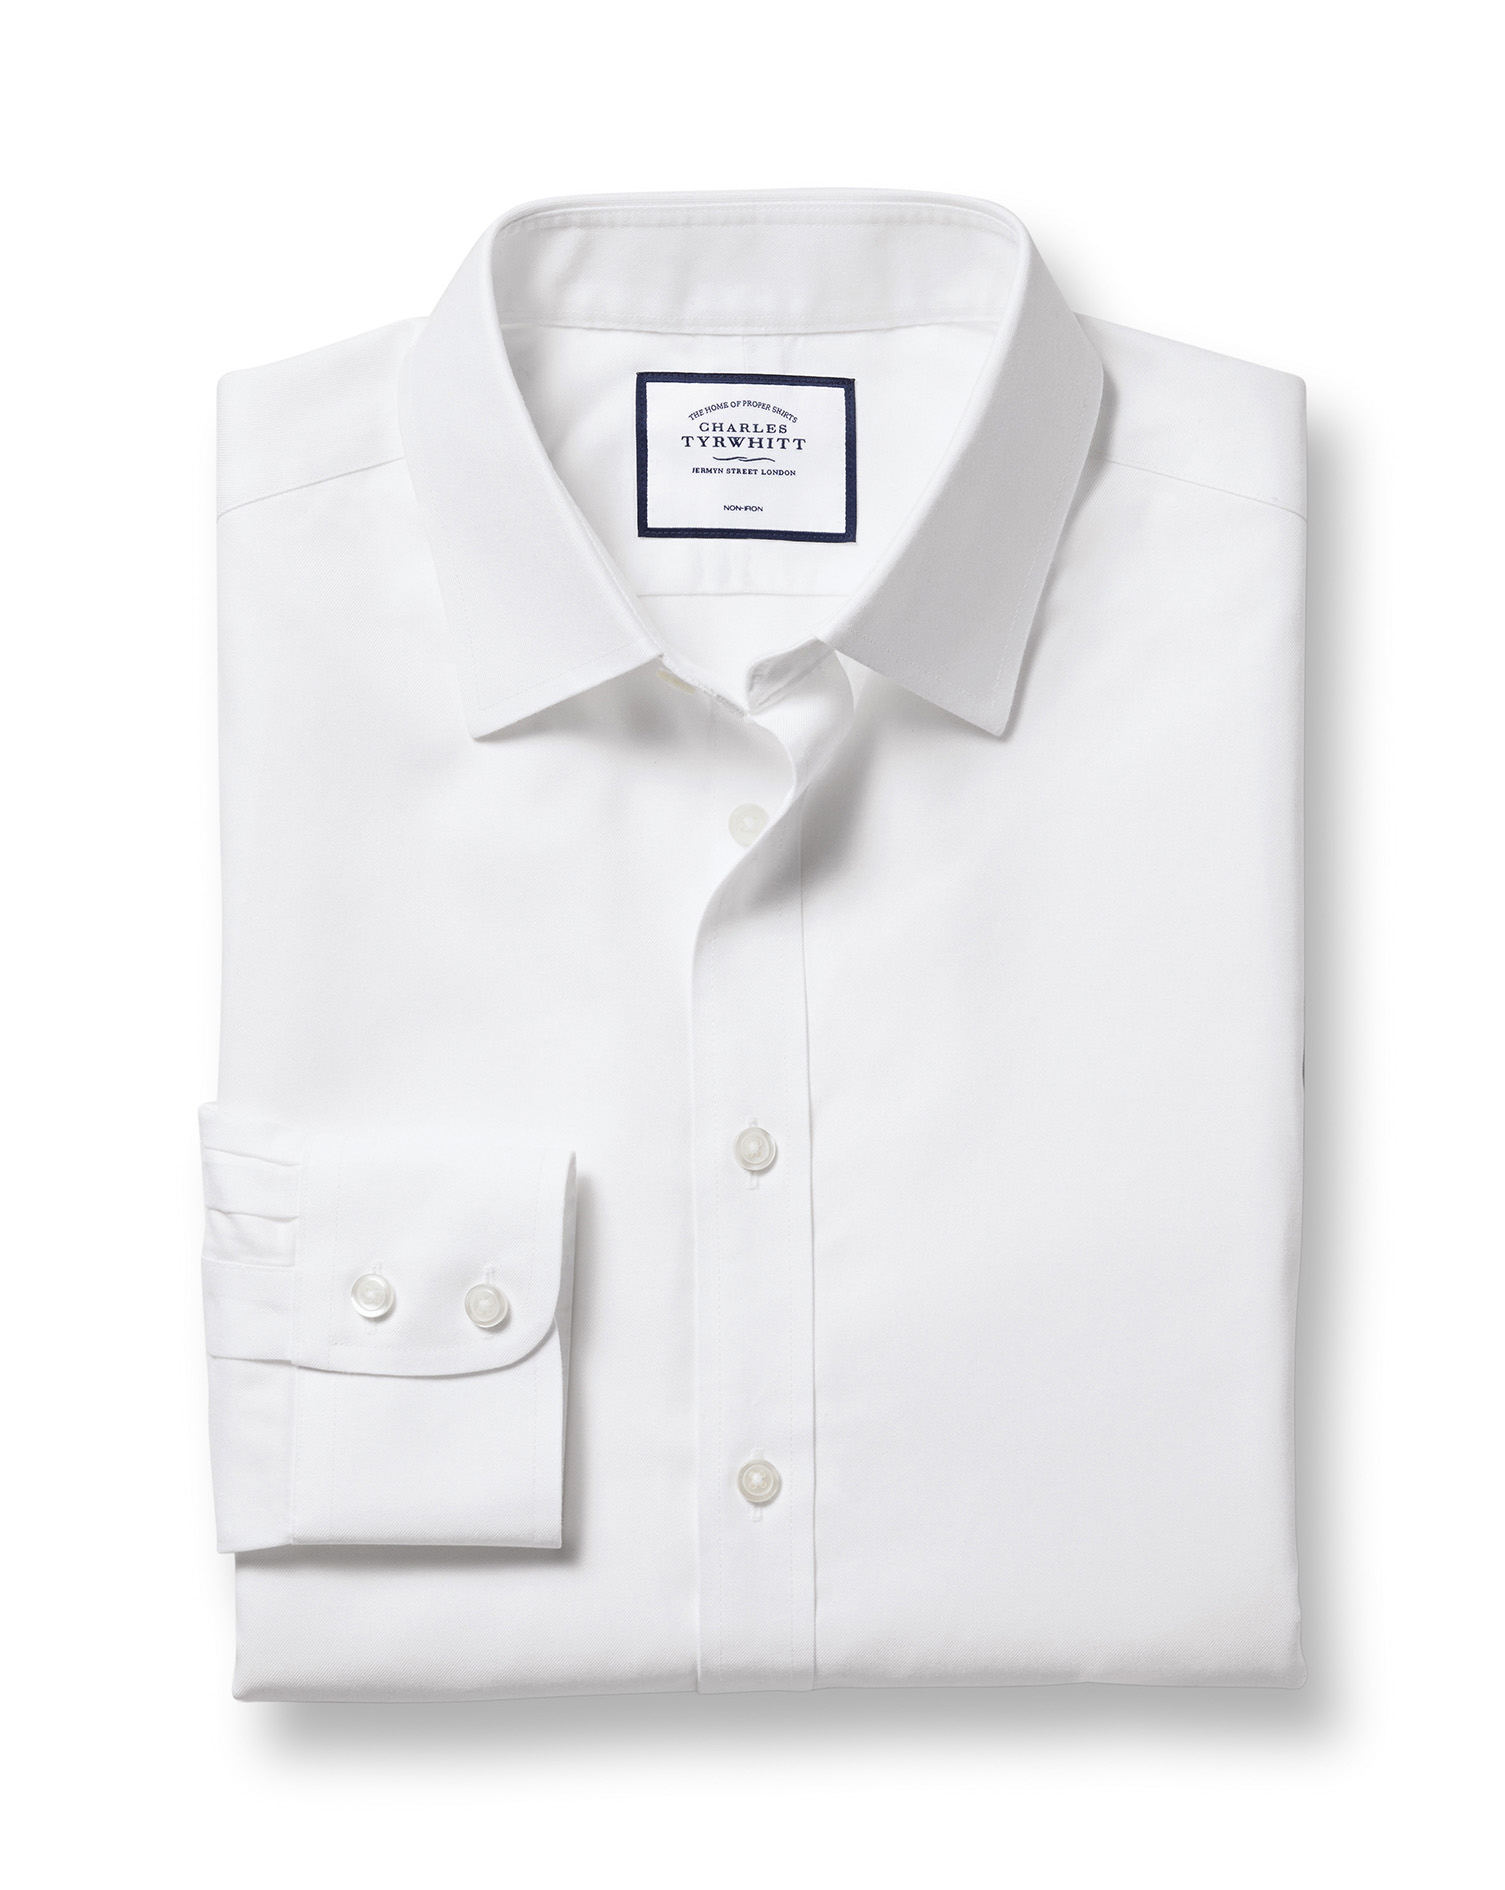 Extra Slim Fit White Non-Iron Twill Cotton Formal Shirt Double Cuff Size 16/33 by Charles Tyrwhitt